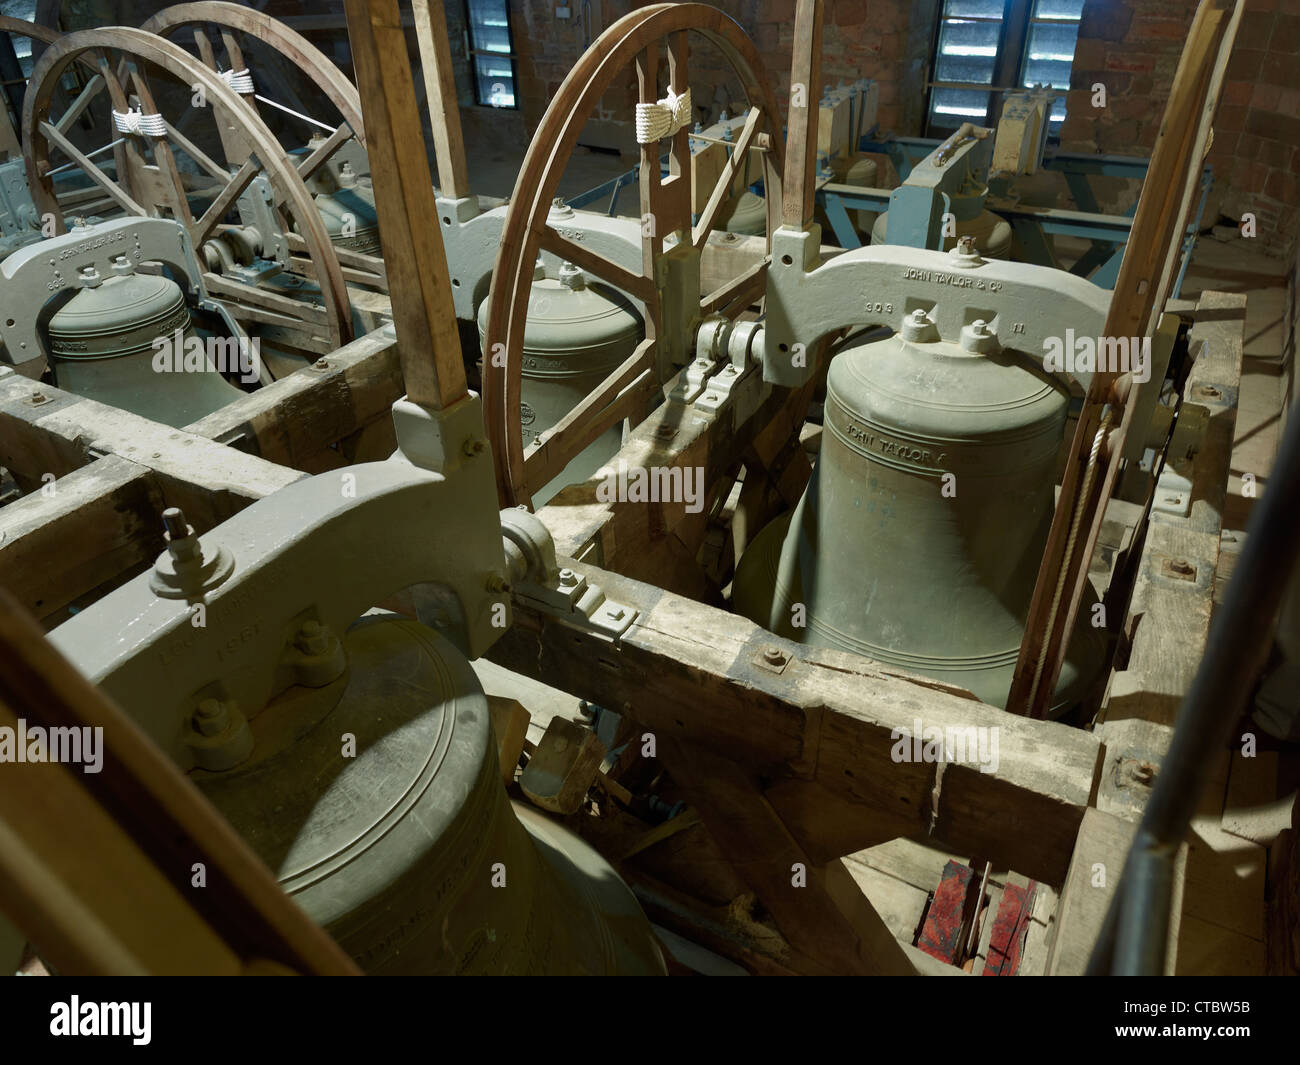 Tewkesbury Abbey Bells in the tower - Stock Image